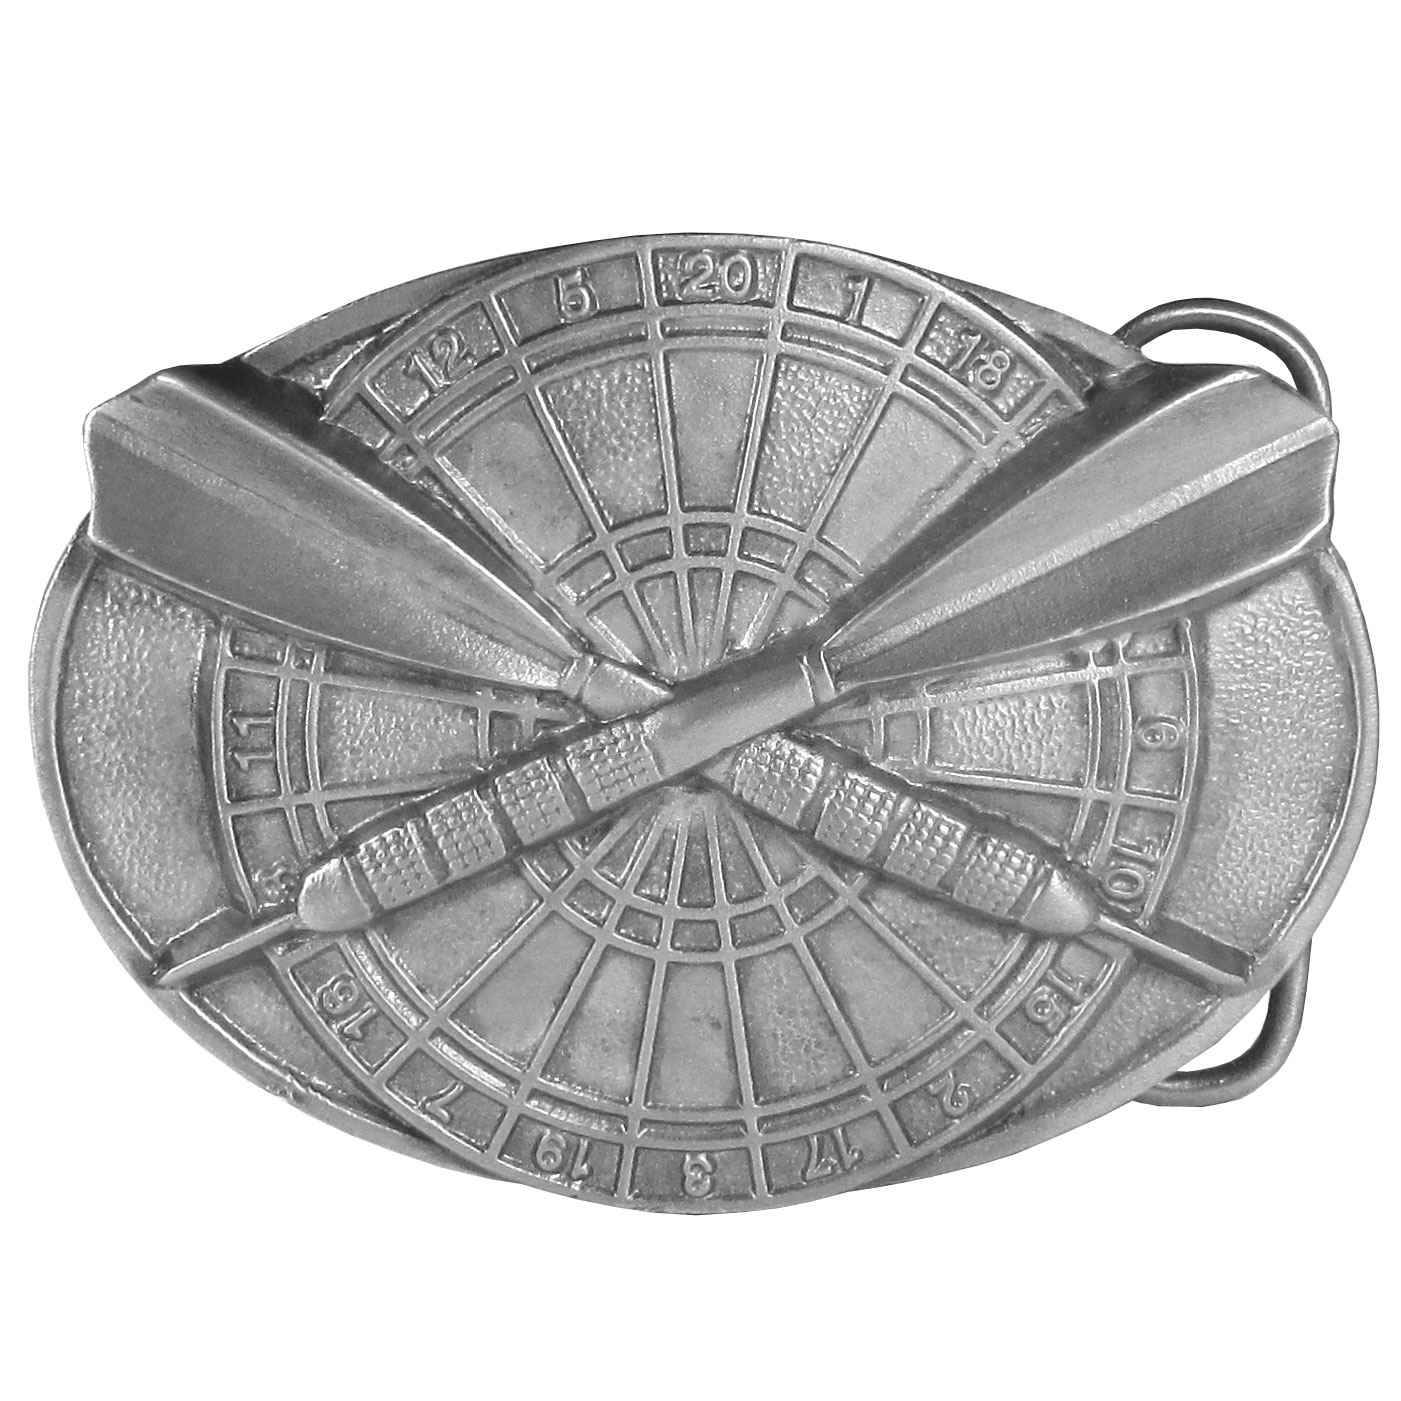 Darts Buckle Antiqued Belt Buckle - This finely sculpted belt buckle contains exceptional 3D detailing. Siskiyou's unique buckle designs often become collector's items and are unequaled with the best craftsmanship.